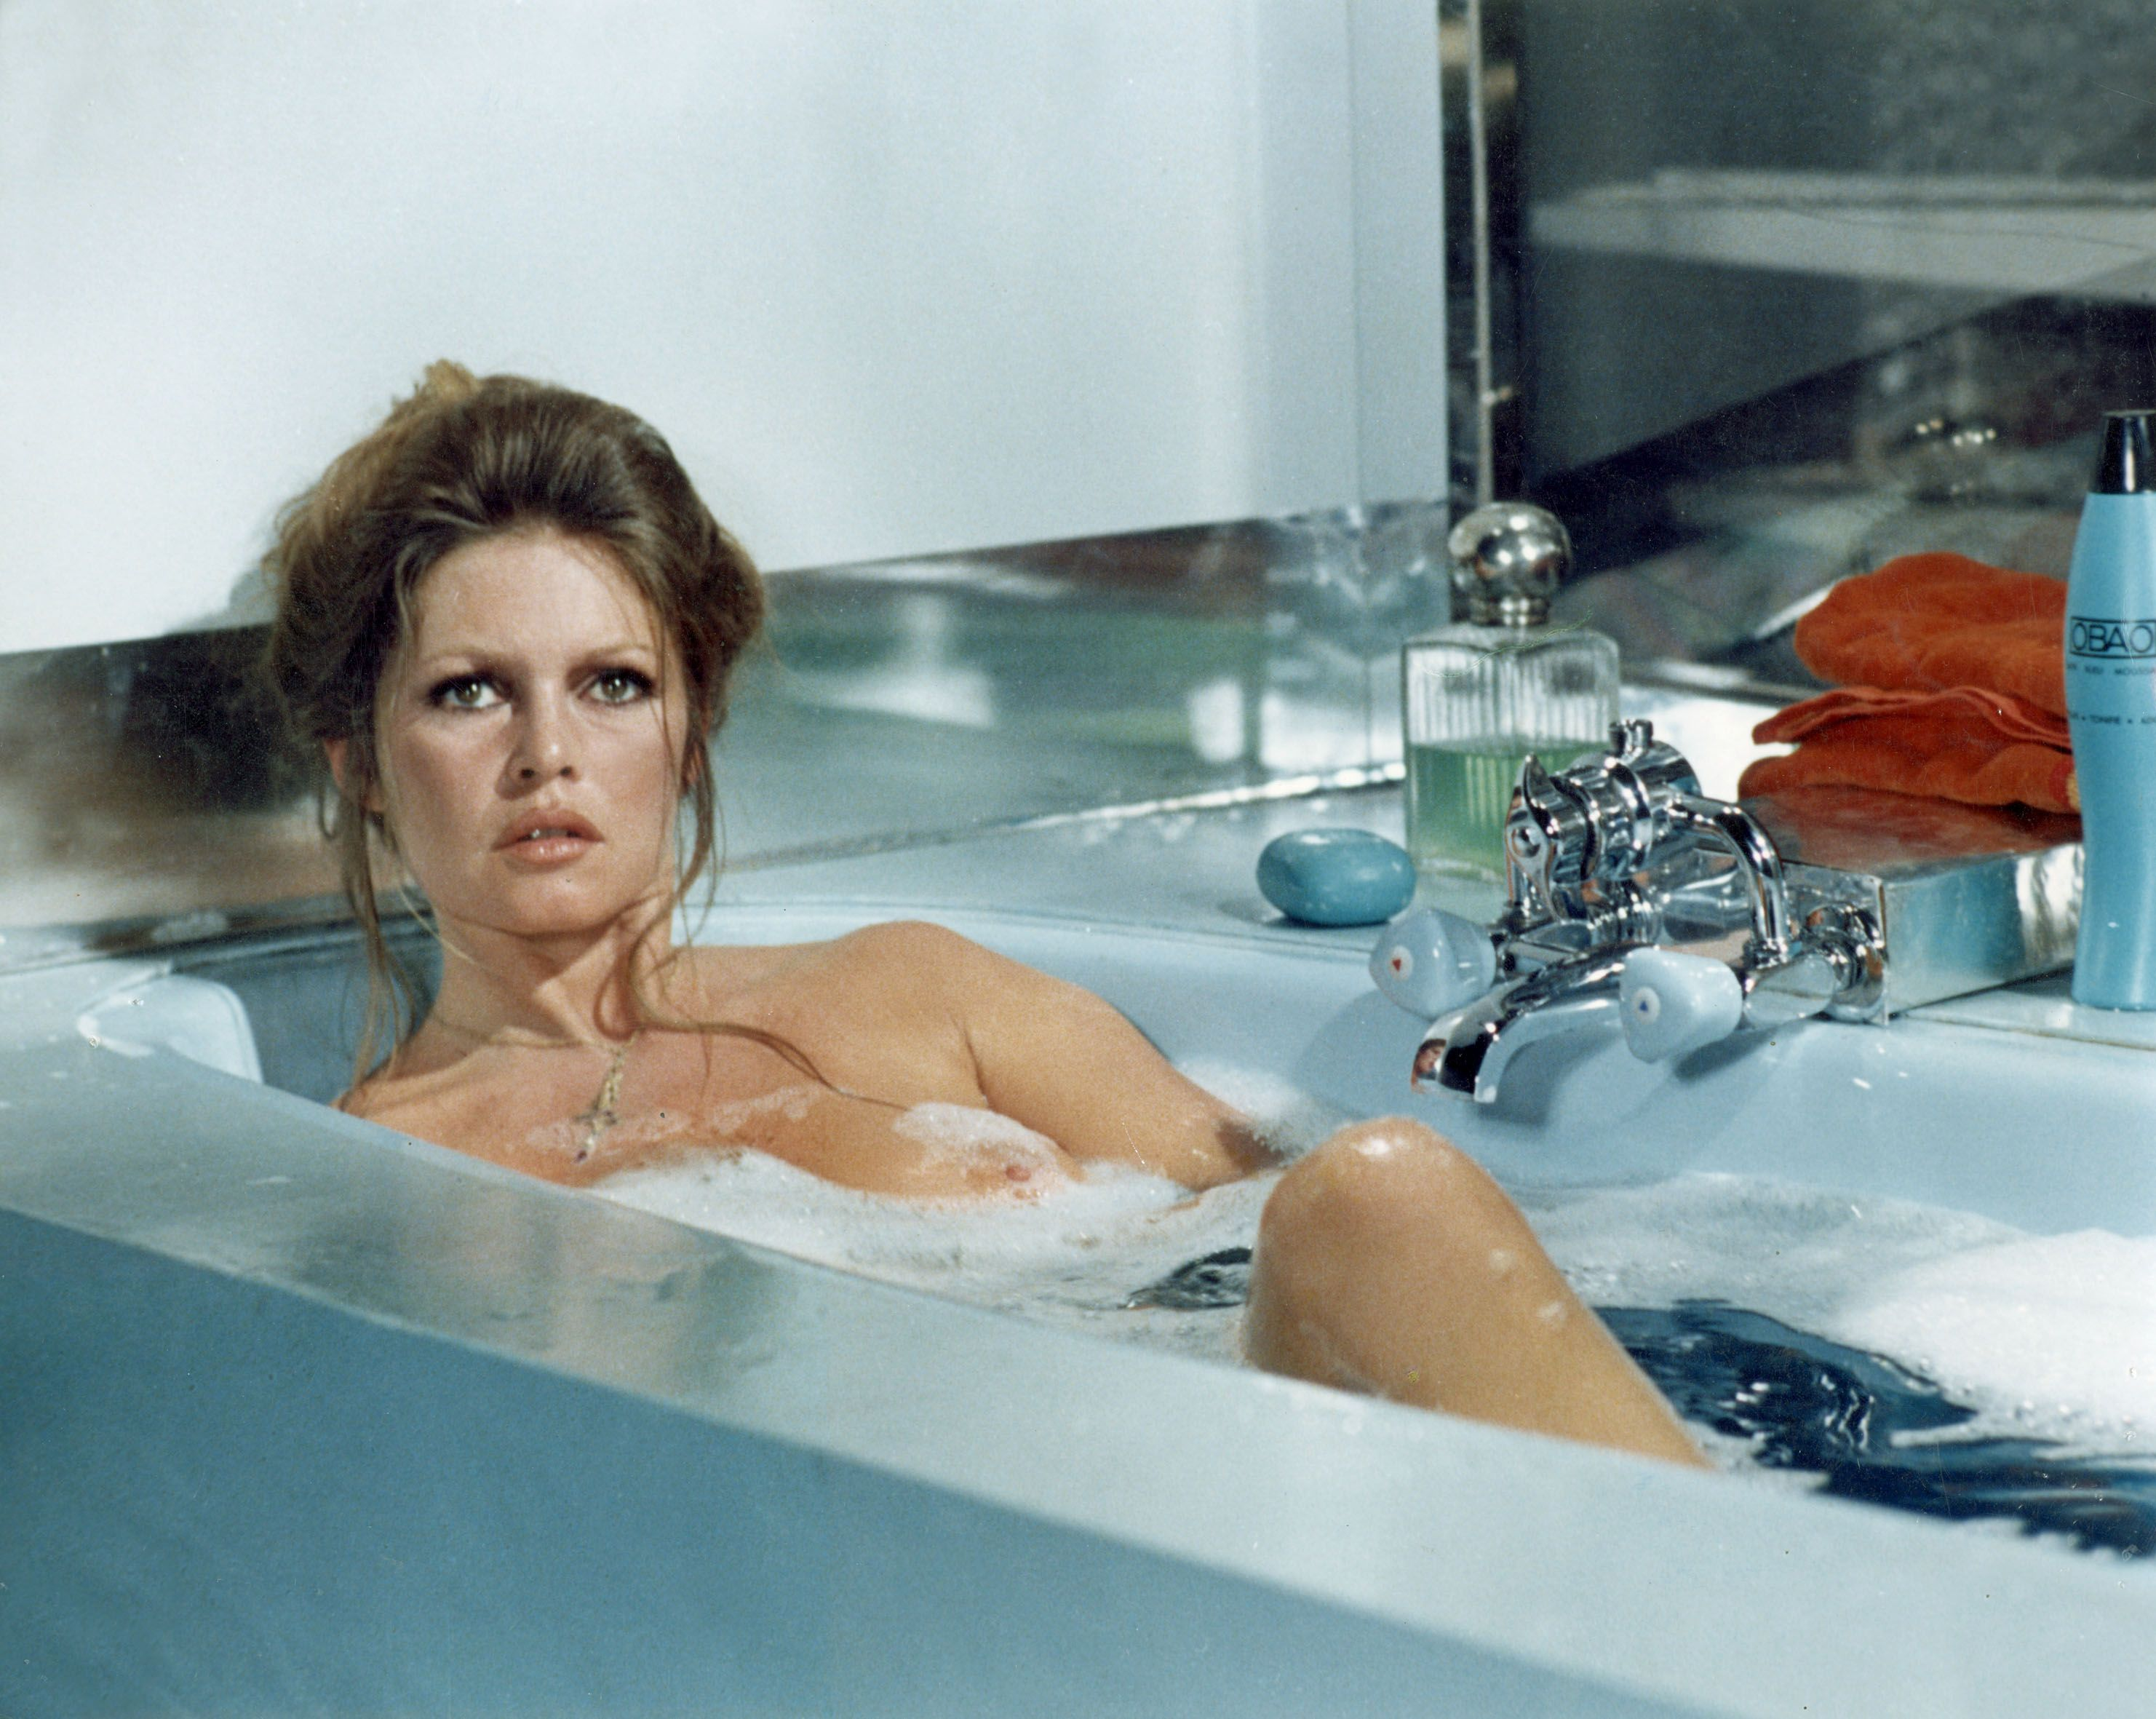 35 Celebrity Bath Tub Moments - Iconic Photographs of Celebs in the Bath